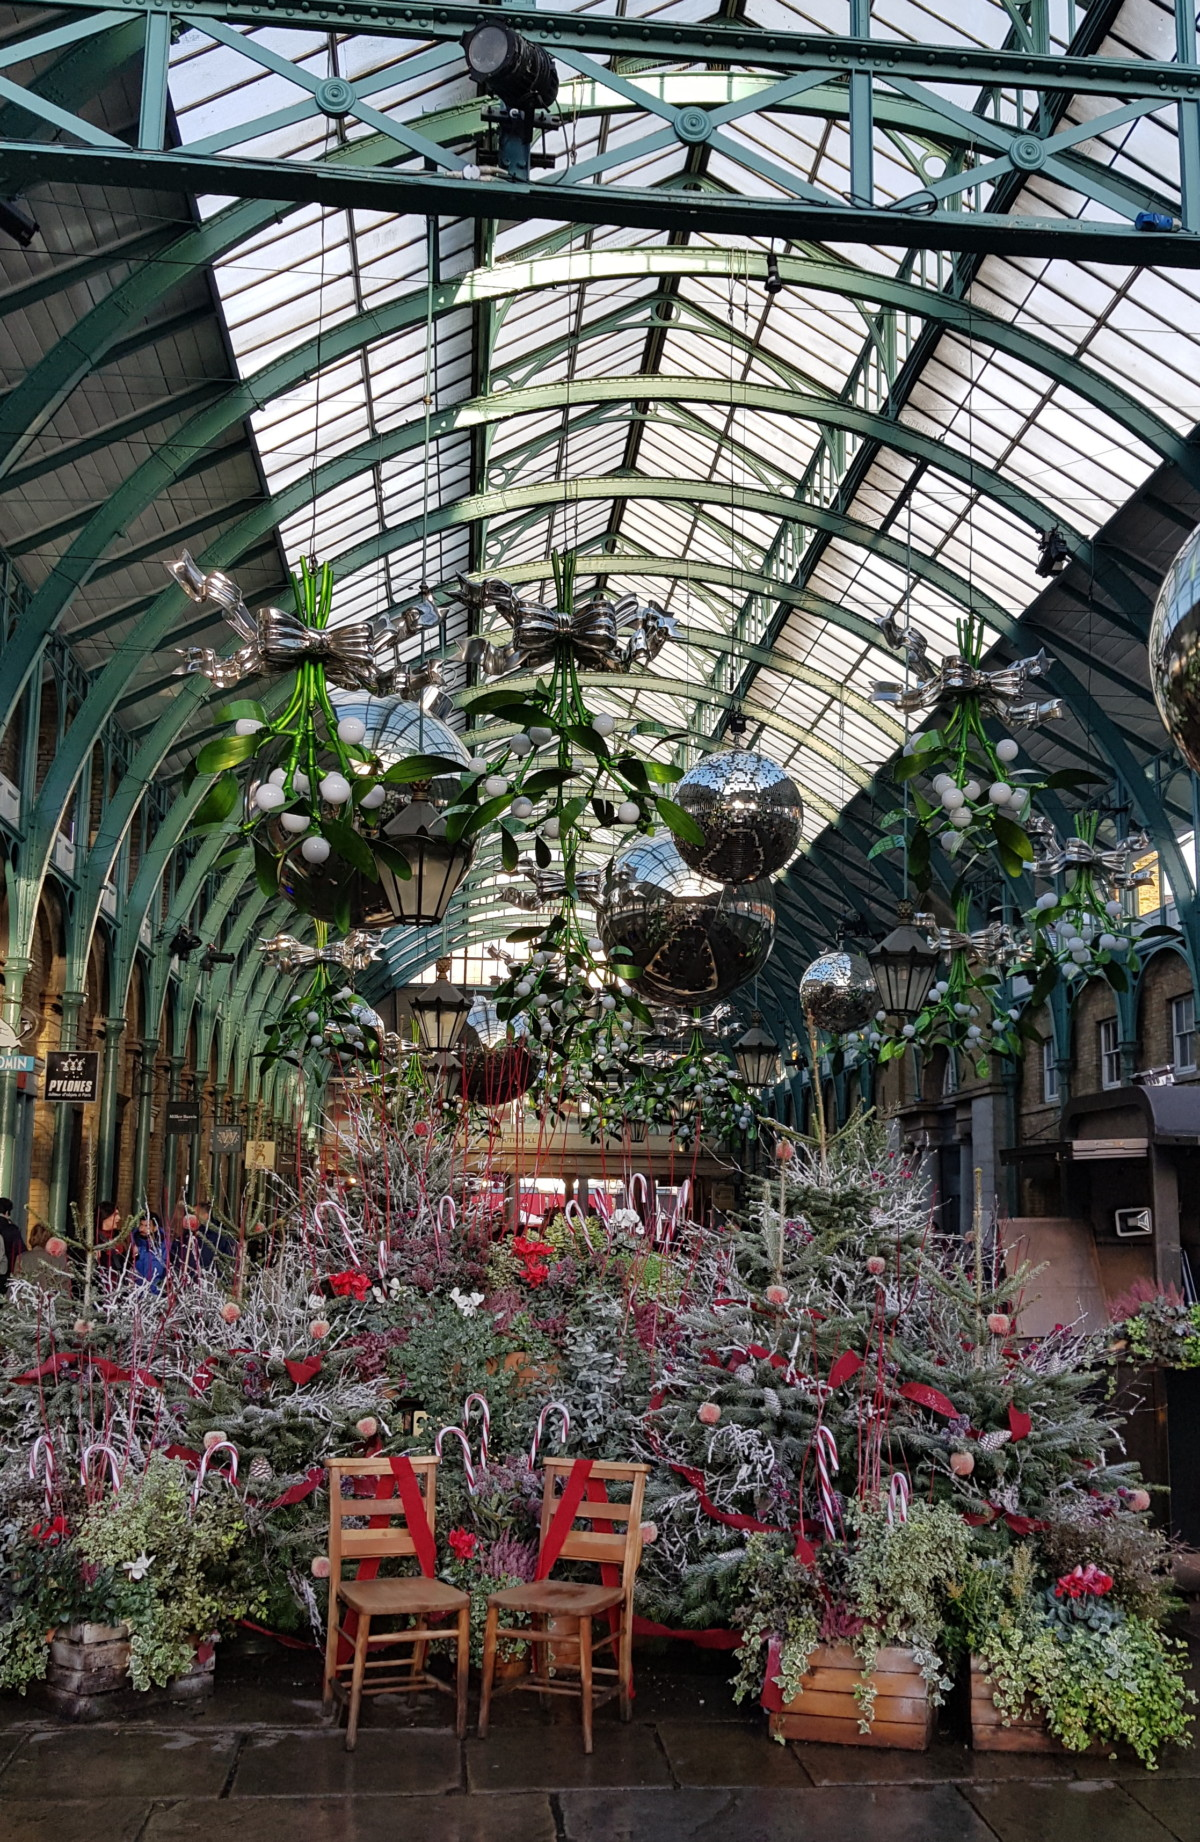 A list of things to do in December to prepare for Christmas, My December To Do List, December, Organisation, December To Do List, BlogMas, Fay Simone, Blogger, Covent Garden, London, Love London, Christmas at Covent Garden